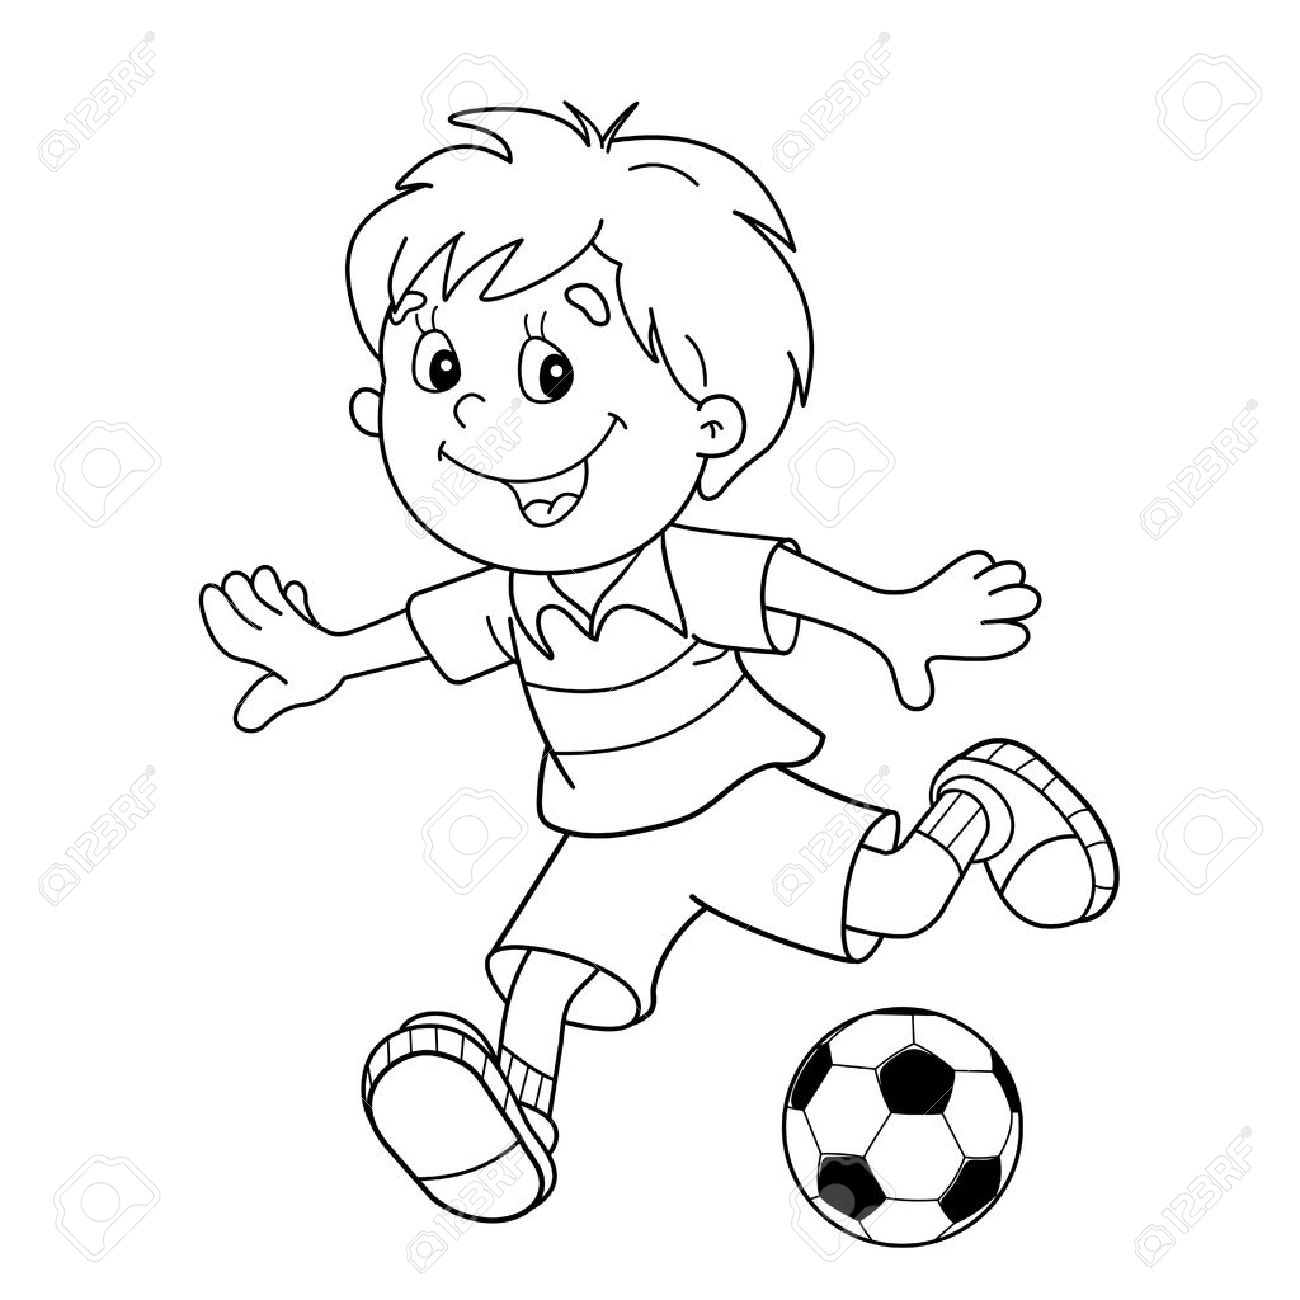 Coloring Page Outline Of Cartoon Boy With A Soccer Ball. Football ...